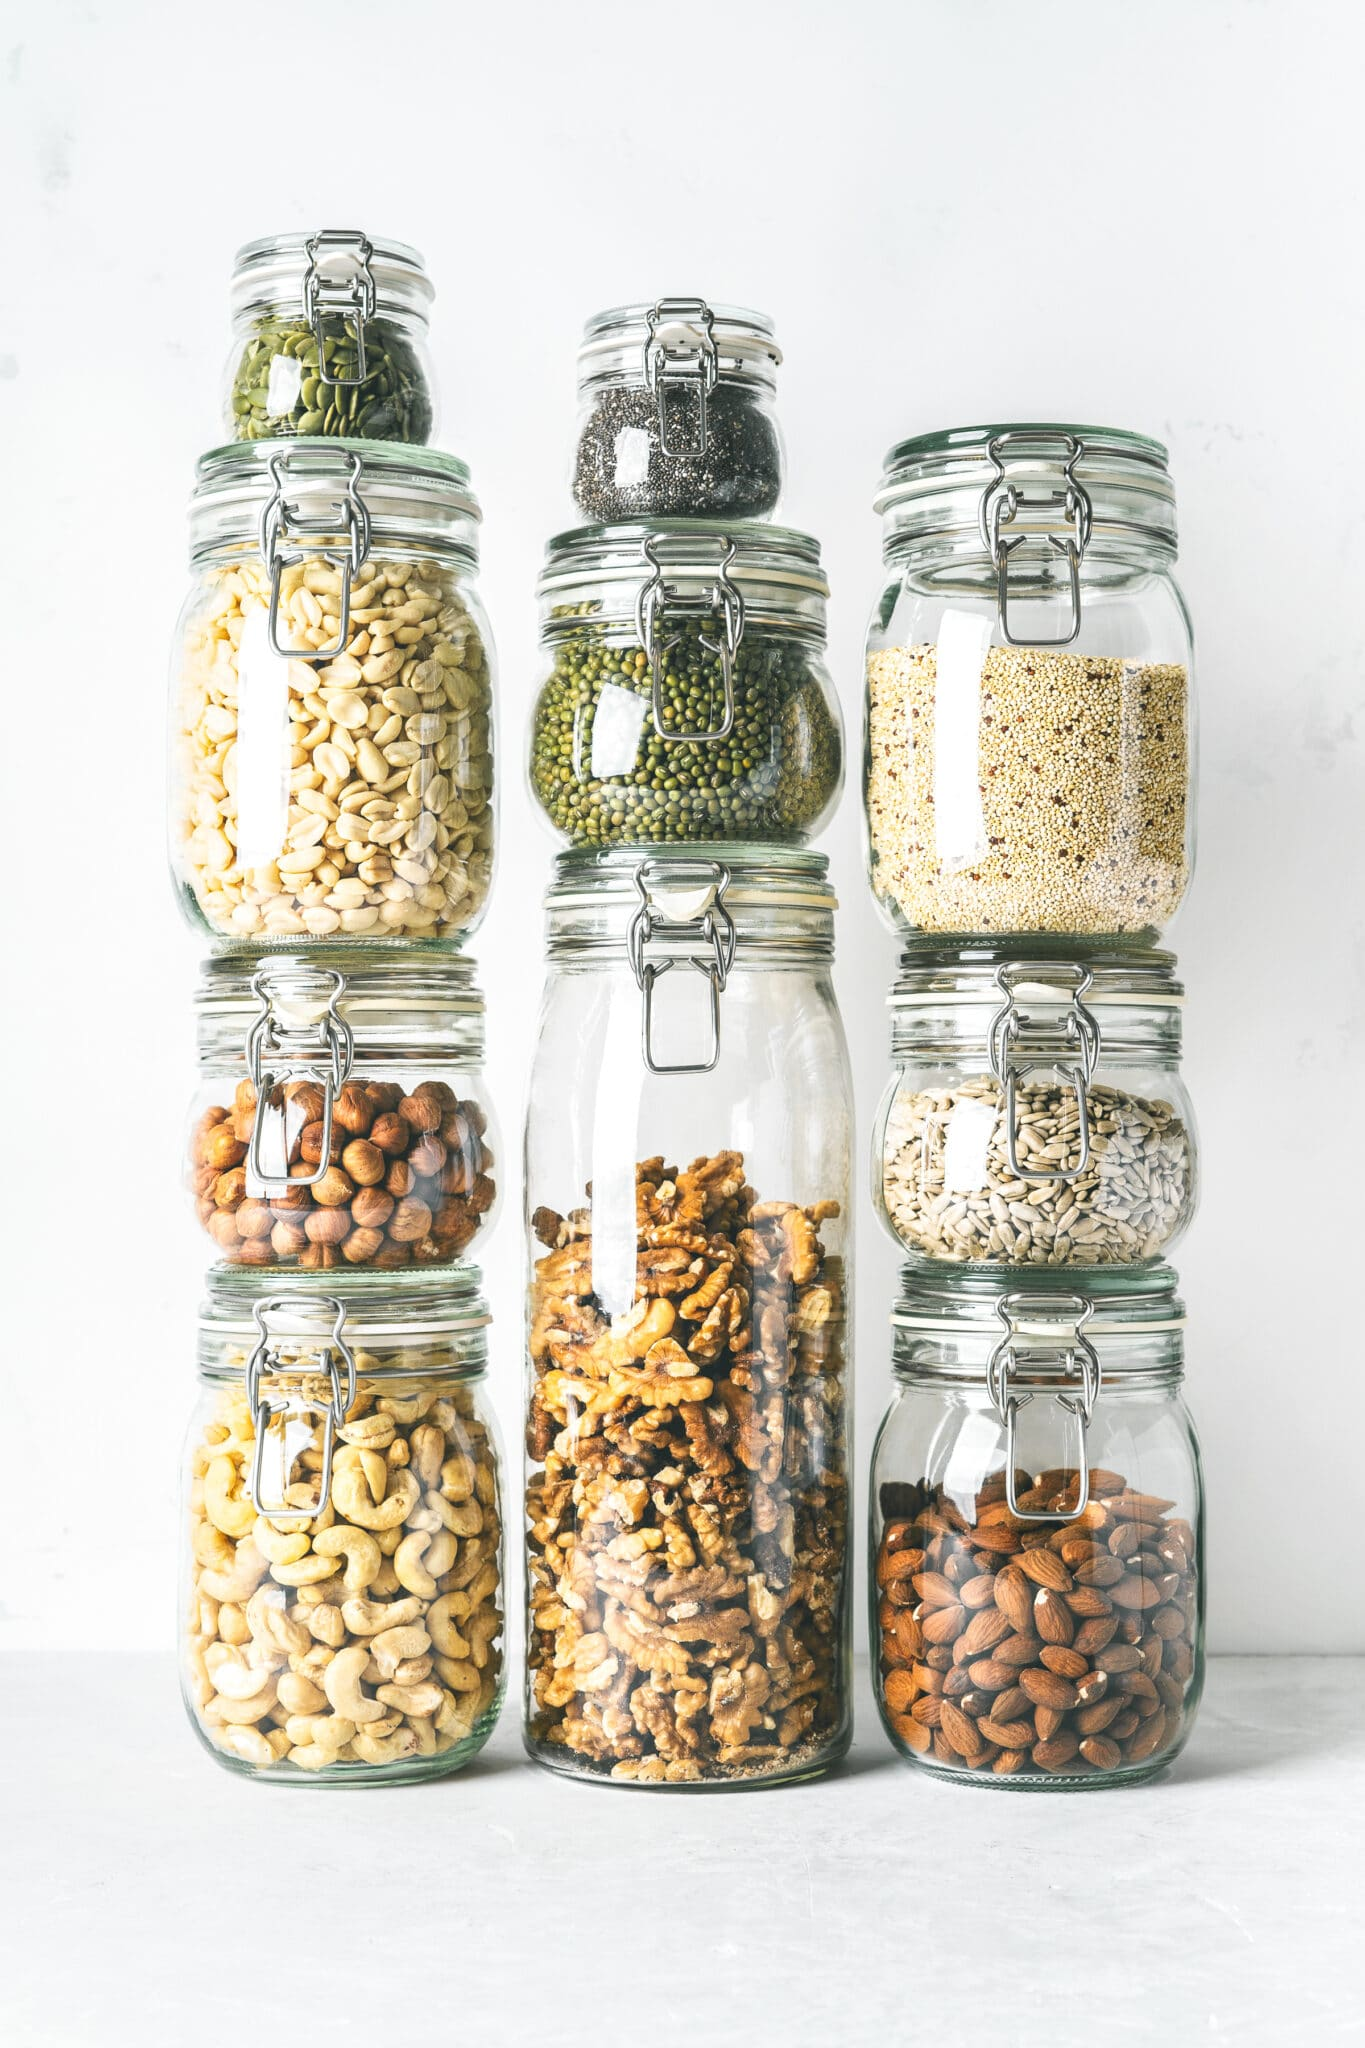 Glass jars stacked filled with low carb panty essential nuts and seeds